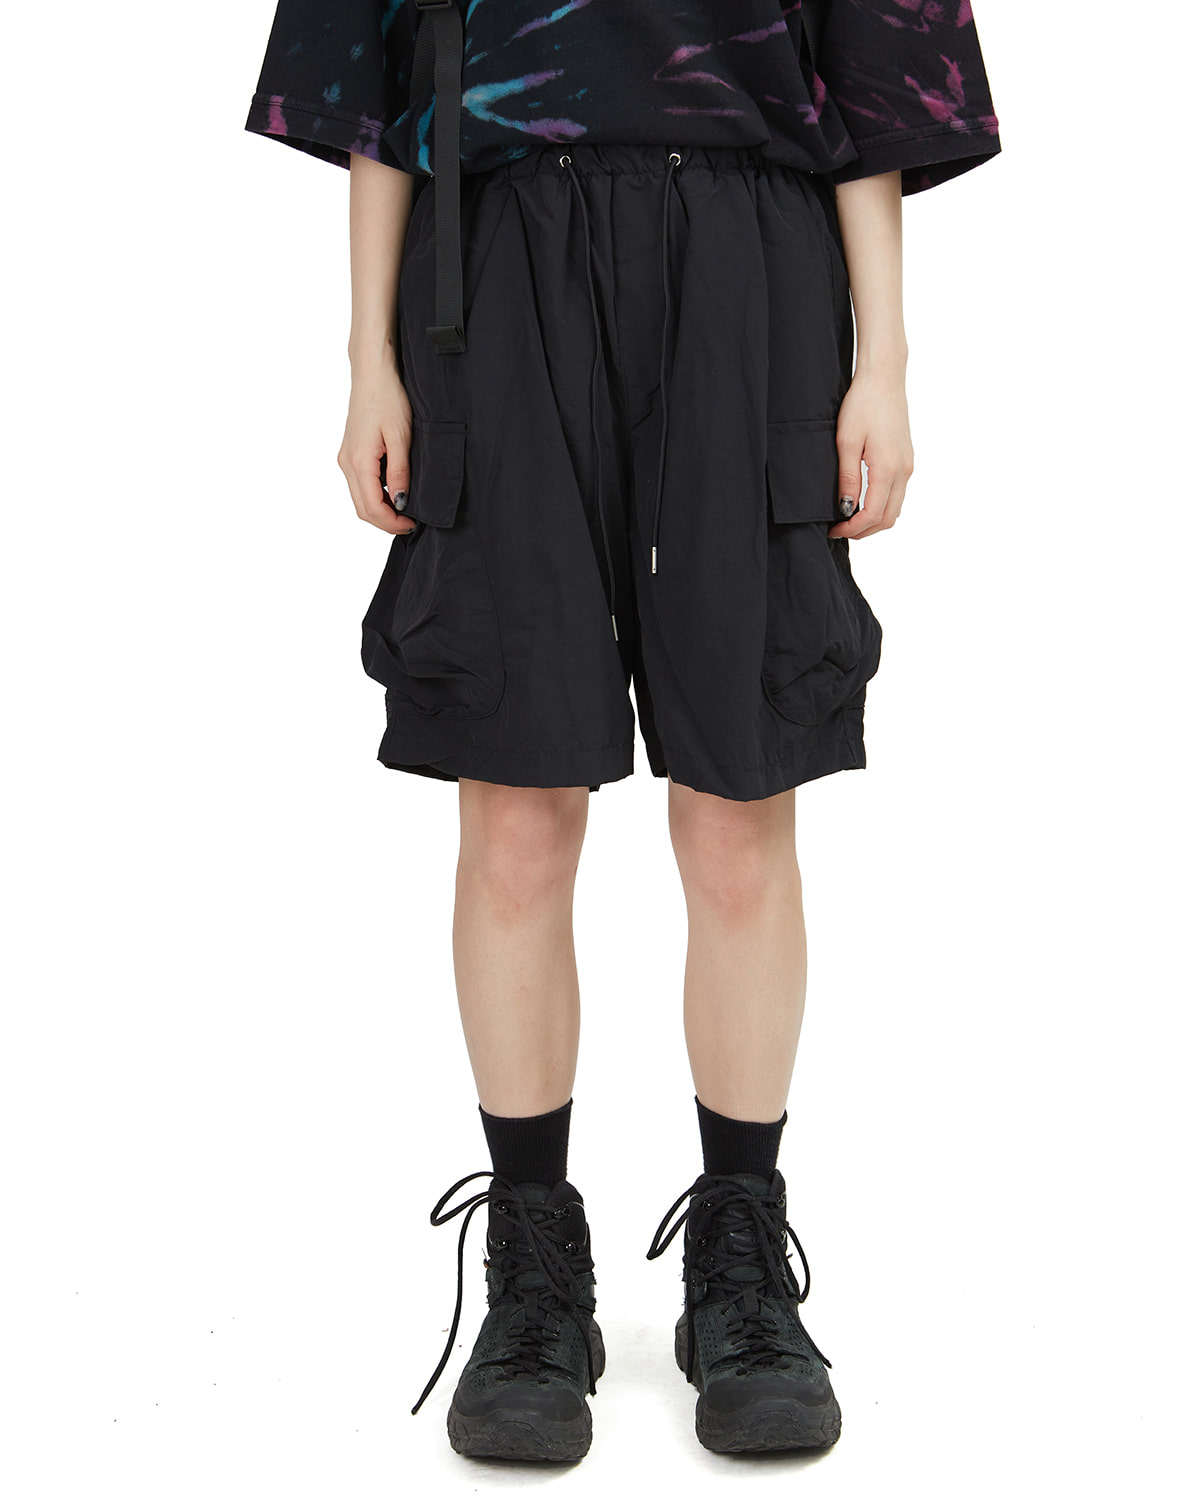 raucohouse-WIDE CARGO NYLON SHORTS - RAUCO HOUSE♡韓國男裝上衣